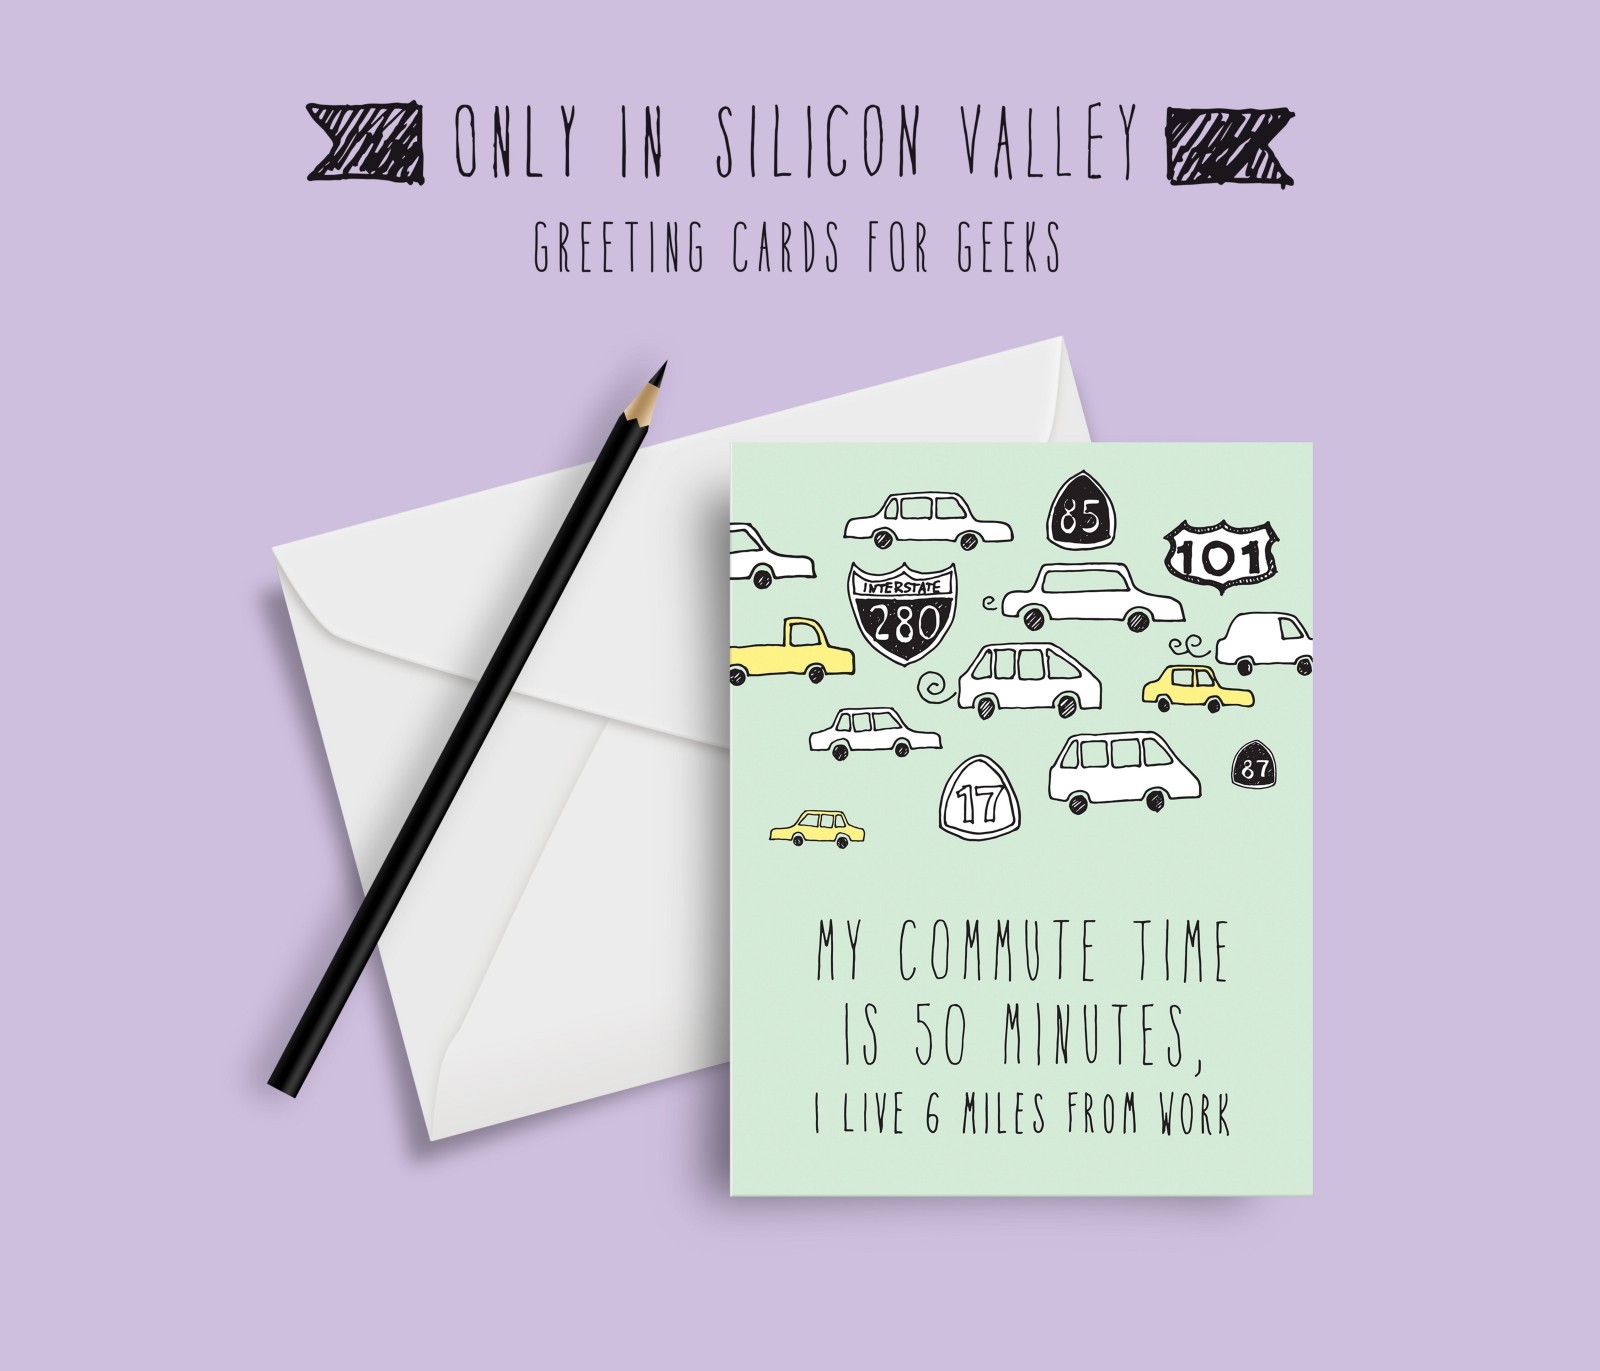 Greeting Cards For Geeks Announcing Only In Silicon Valley